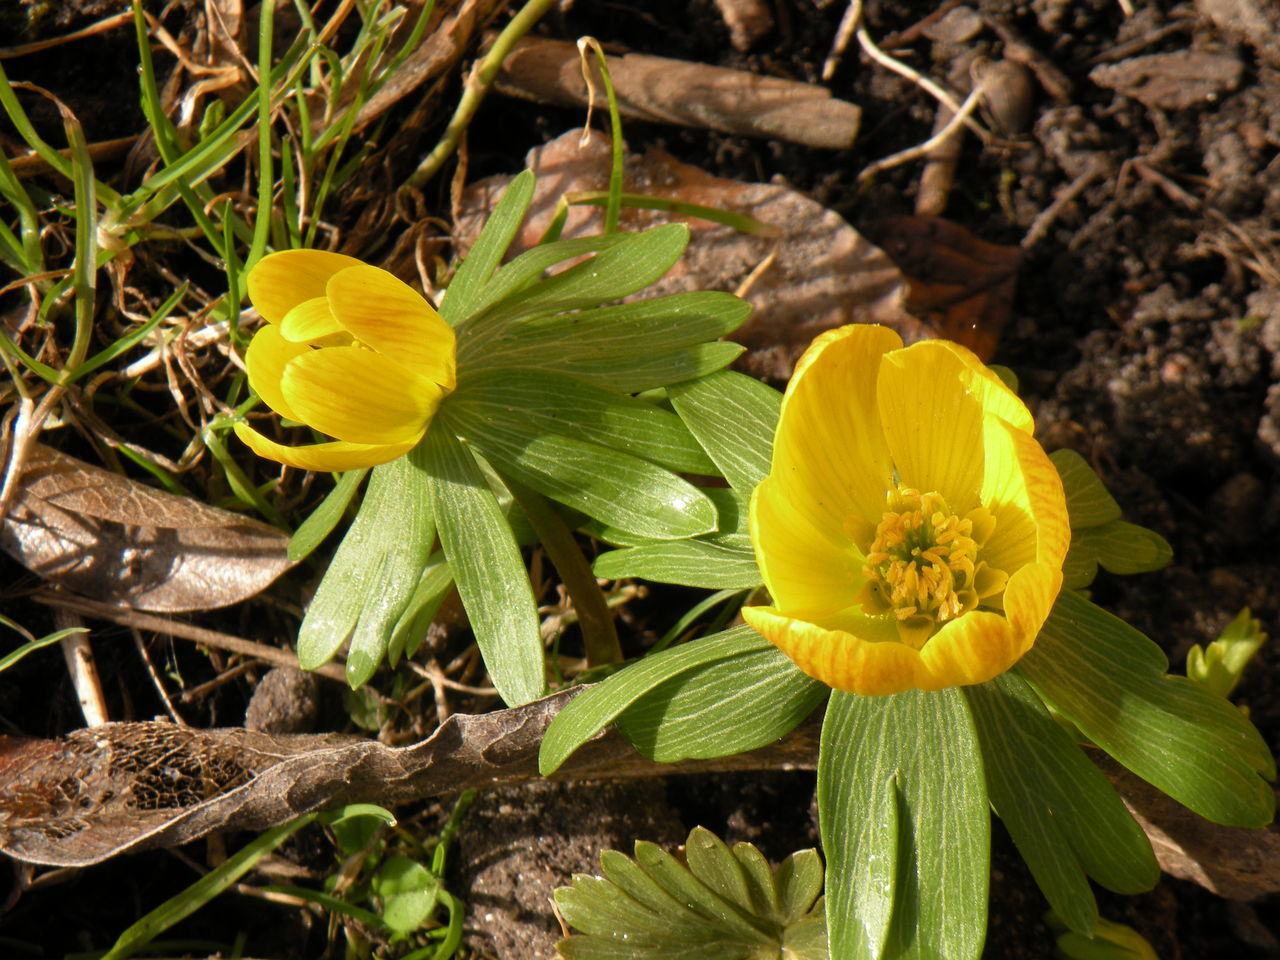 Yellow Growth Nature Plant Outdoors Flower Flower Head Field Fragility Beauty In Nature Freshness Close-up No People Day Aconite Winter Aconite Spring Springtime Spring Flowers Spring Has Arrived Eranthis Eranthis Hyemalis Erantis - in The Danish Countryside